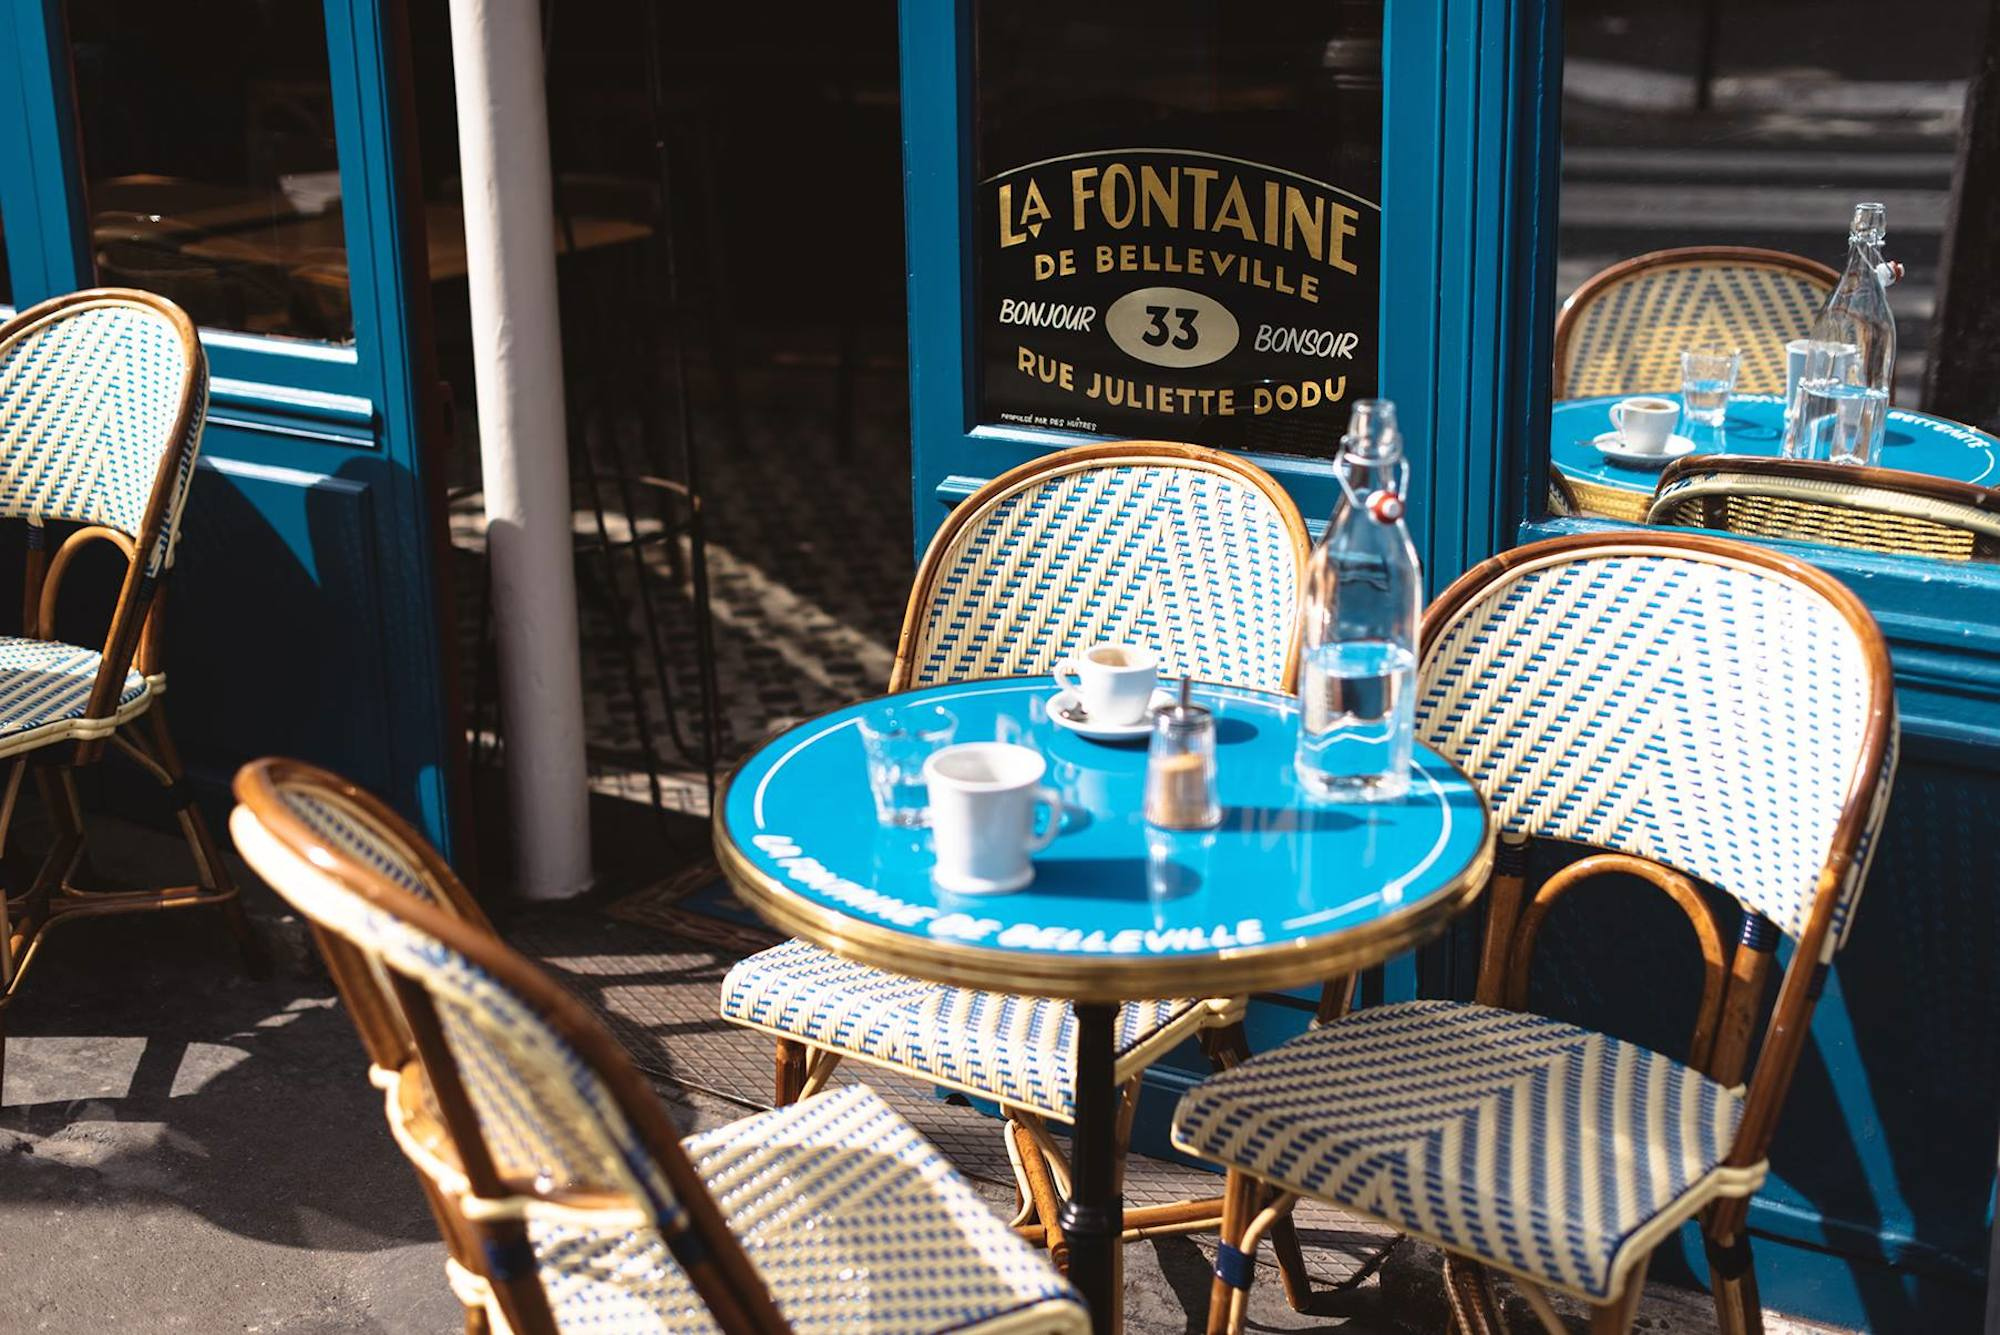 HiP Paris Blog rounds up the top brunch spots in Paris like the Fontaine de Belleville cafe and its blue exterior and outdoor seating area.